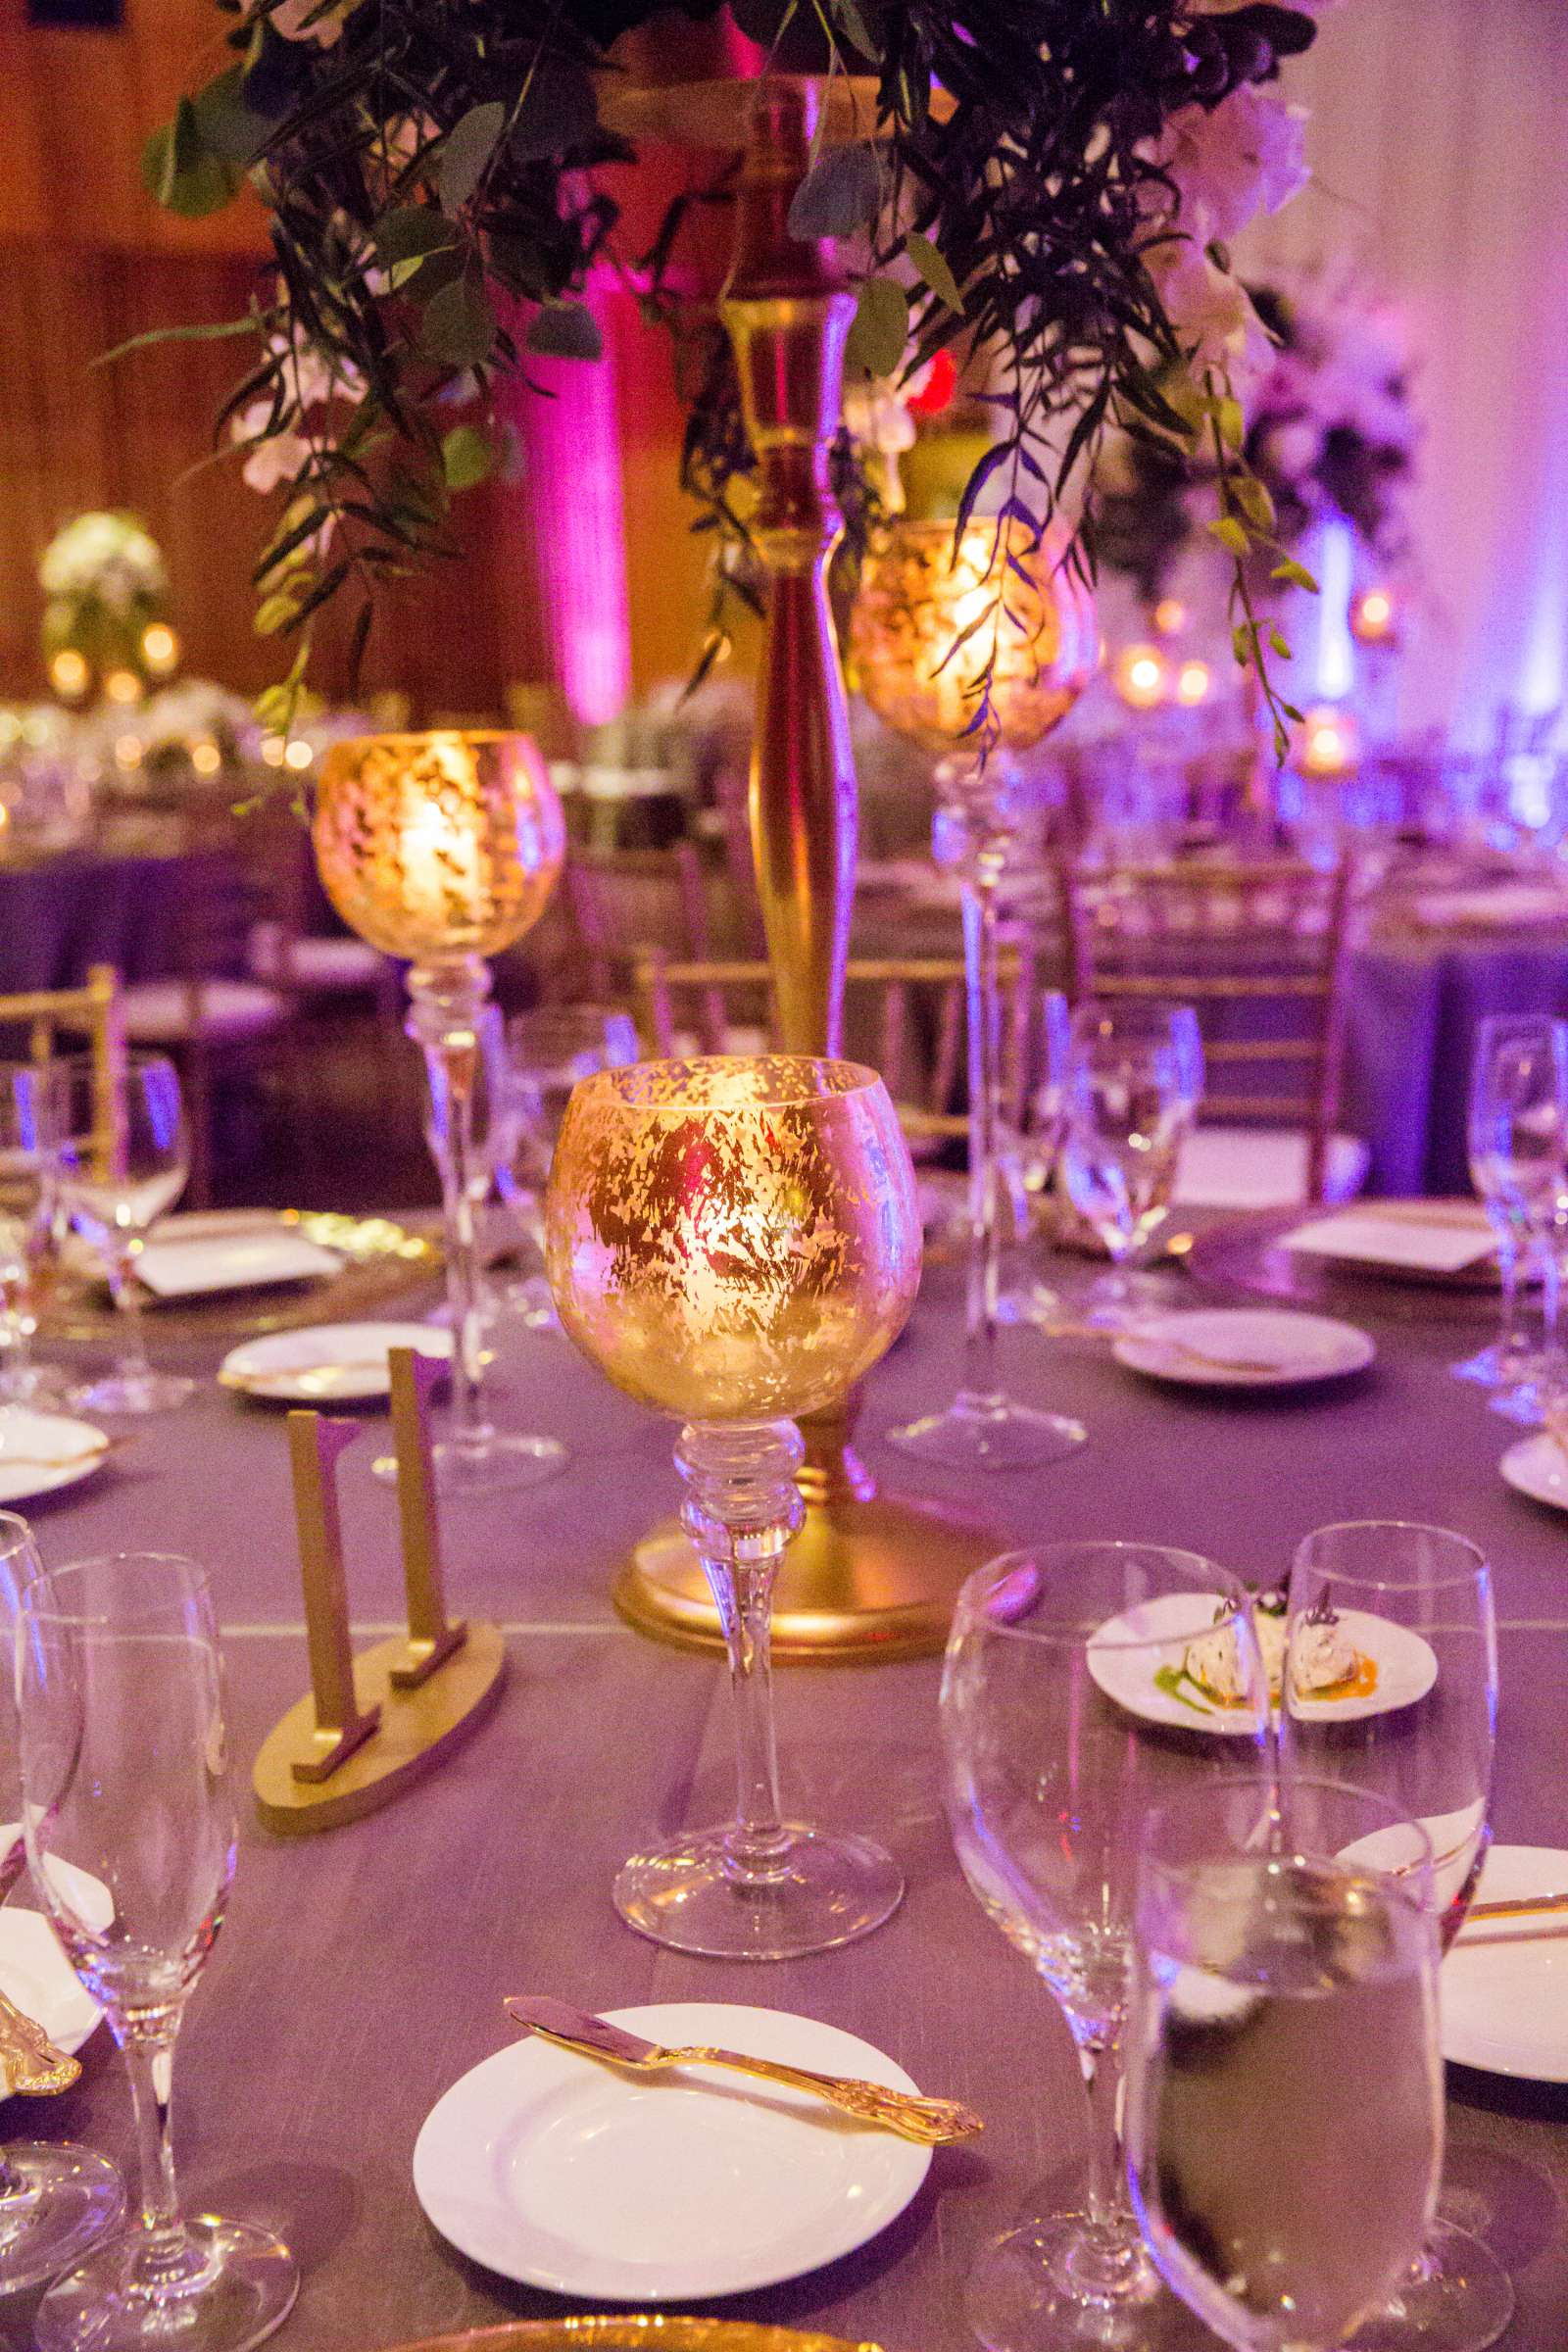 Scripps Seaside Forum Wedding coordinated by Lavish Weddings, Cindy and Justin Wedding Photo #381971 by True Photography